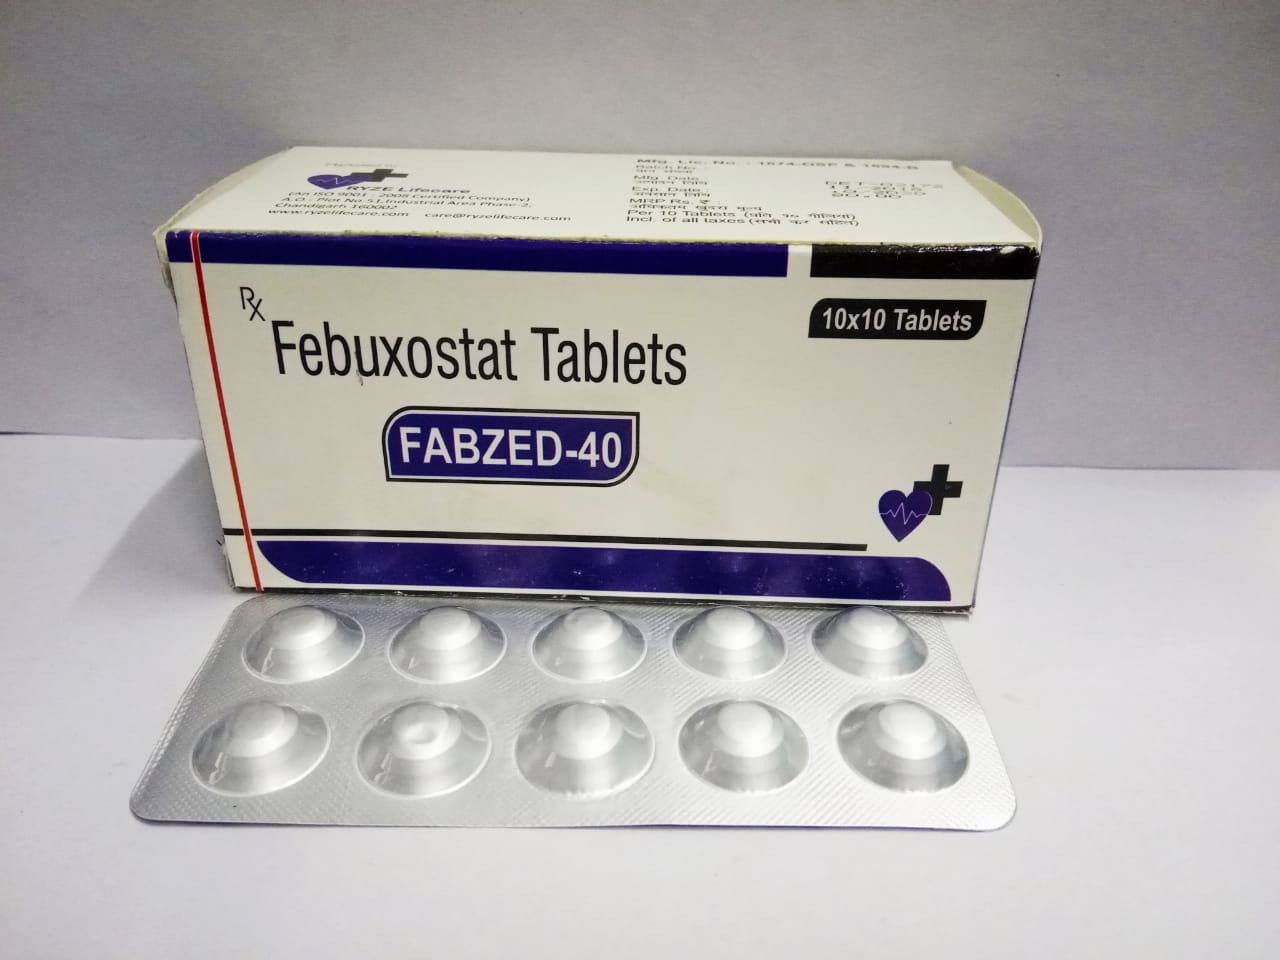 FABZED-40 Tablets